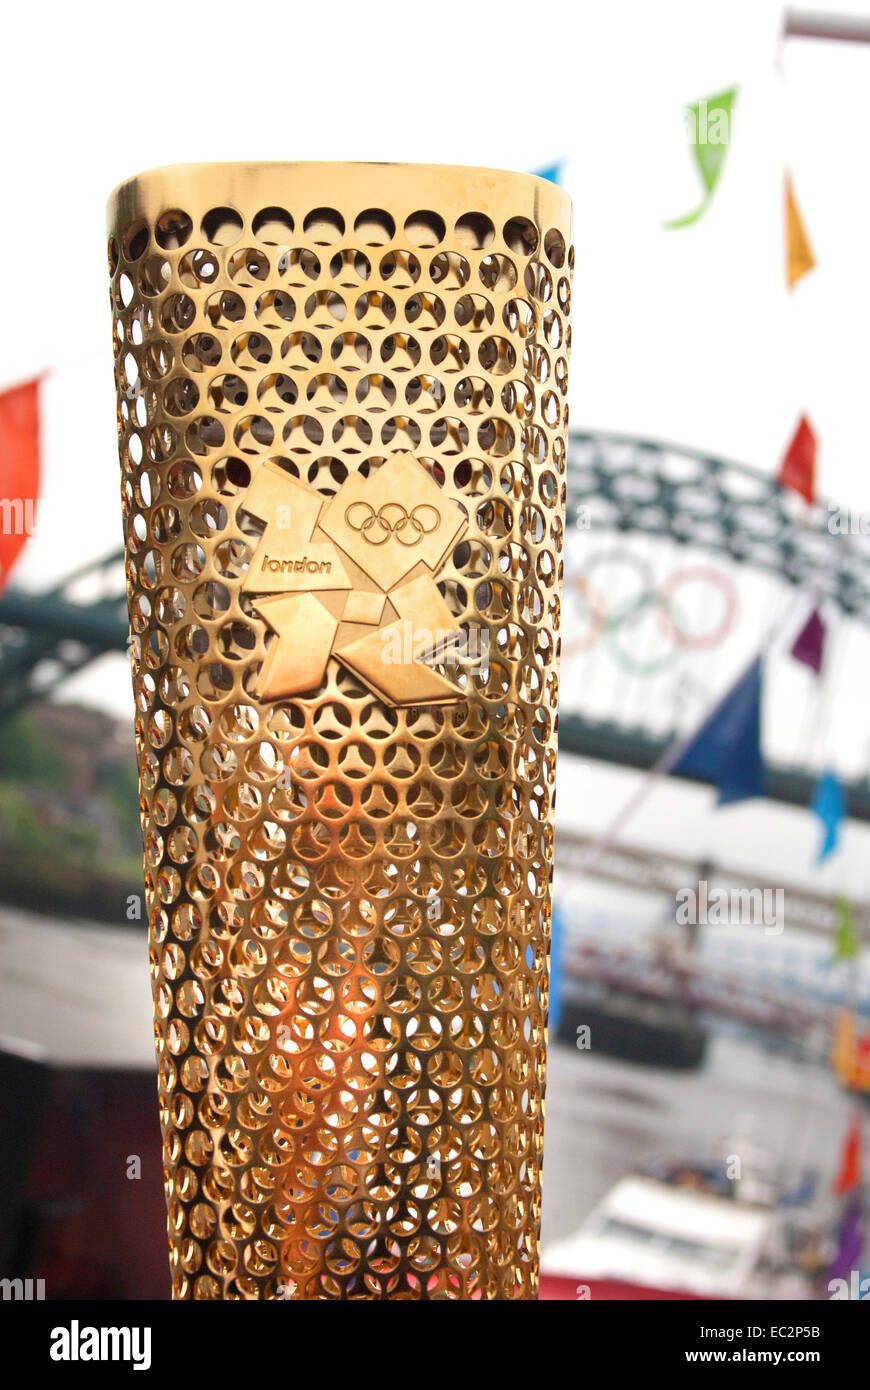 Olympic torch - London 2012 - Stock Image